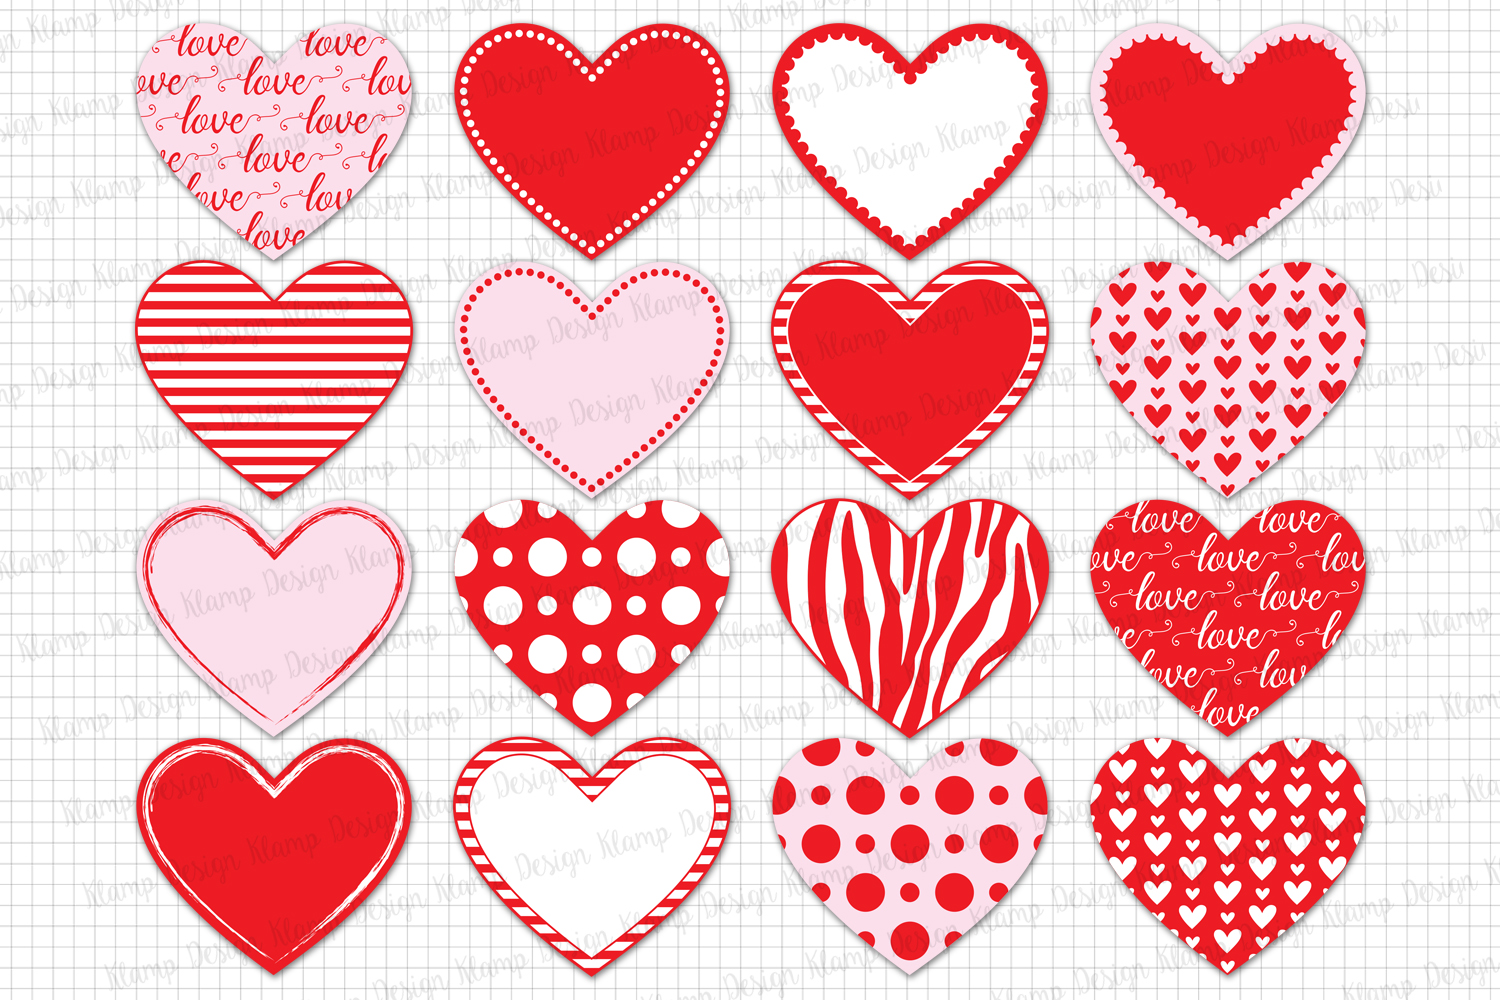 Heart Love Heart Clipart Valentin